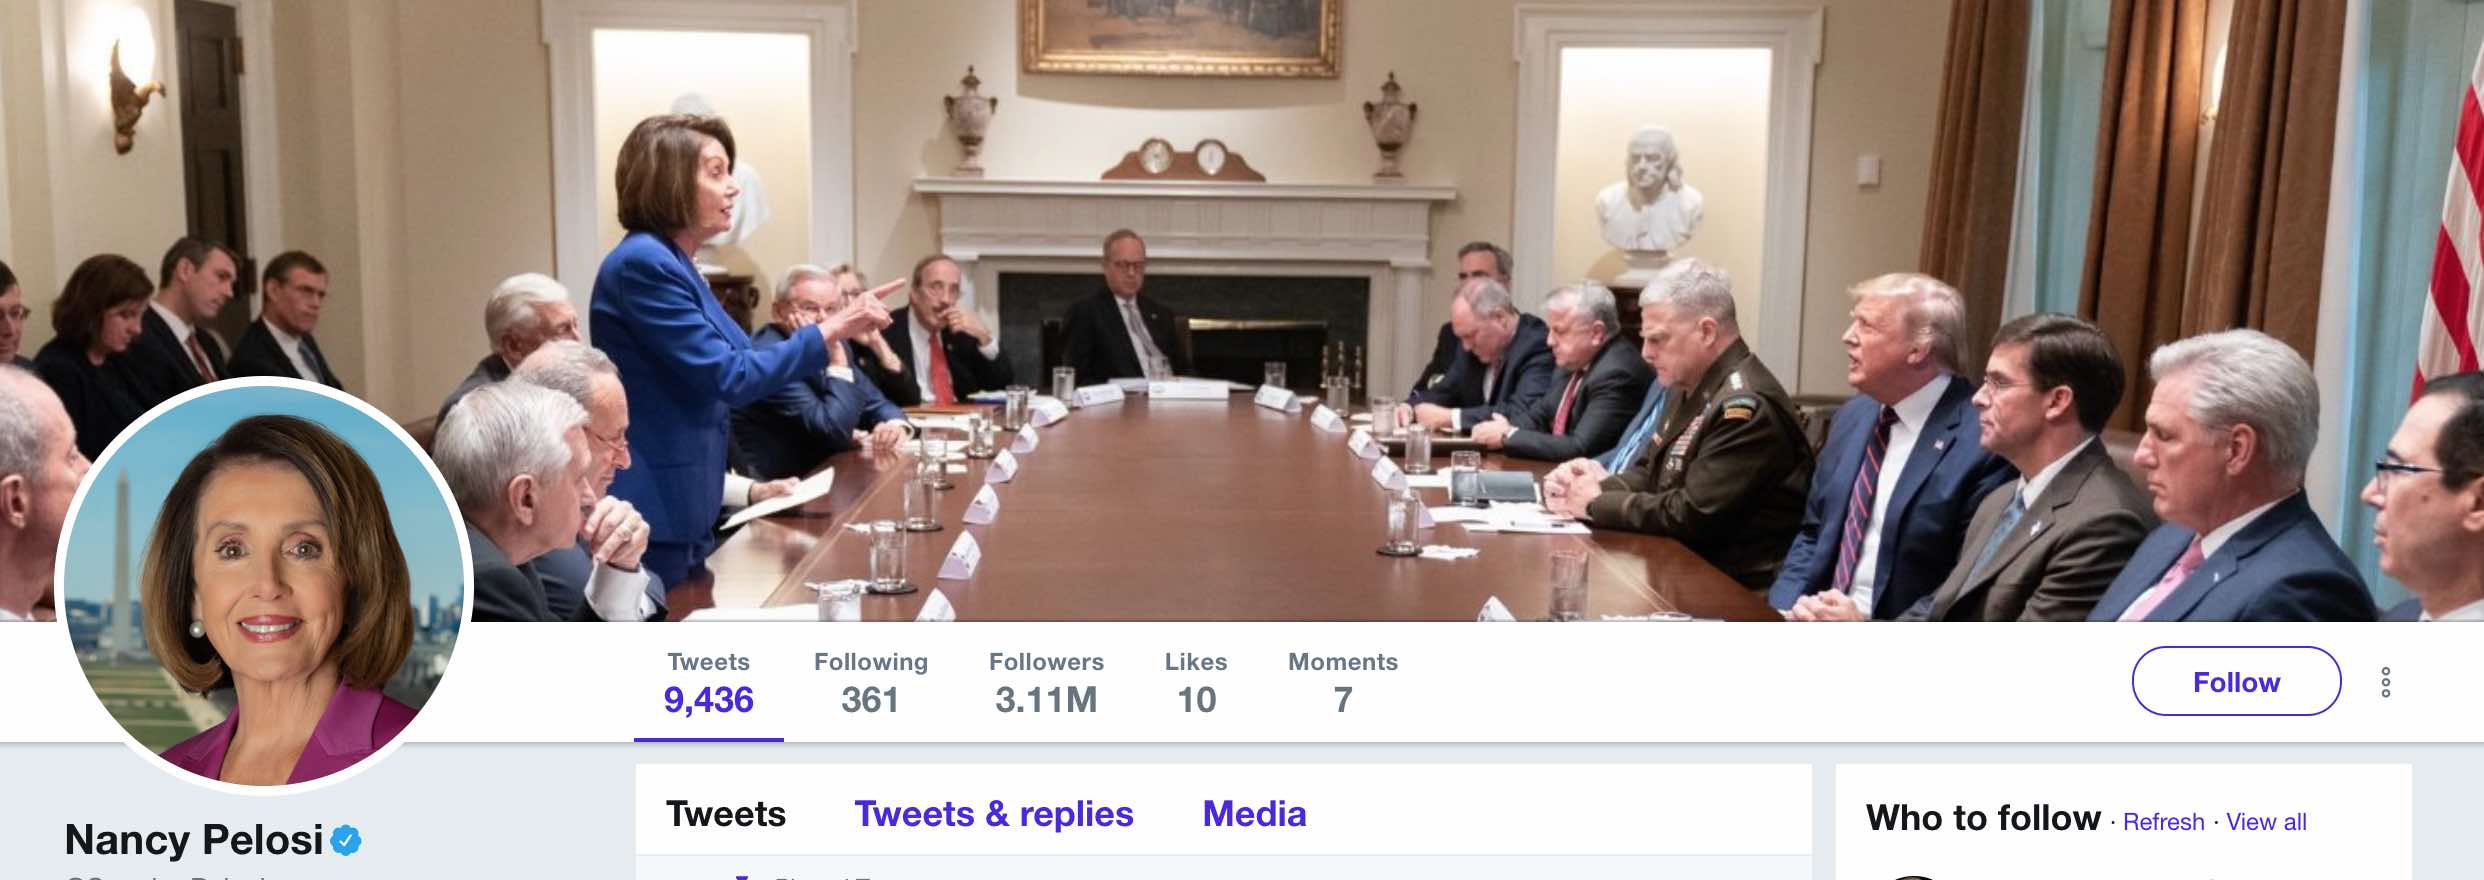 Pelosi's Twitter account shows her standing at a table in the White House and speaking; not remotely a meltdown.